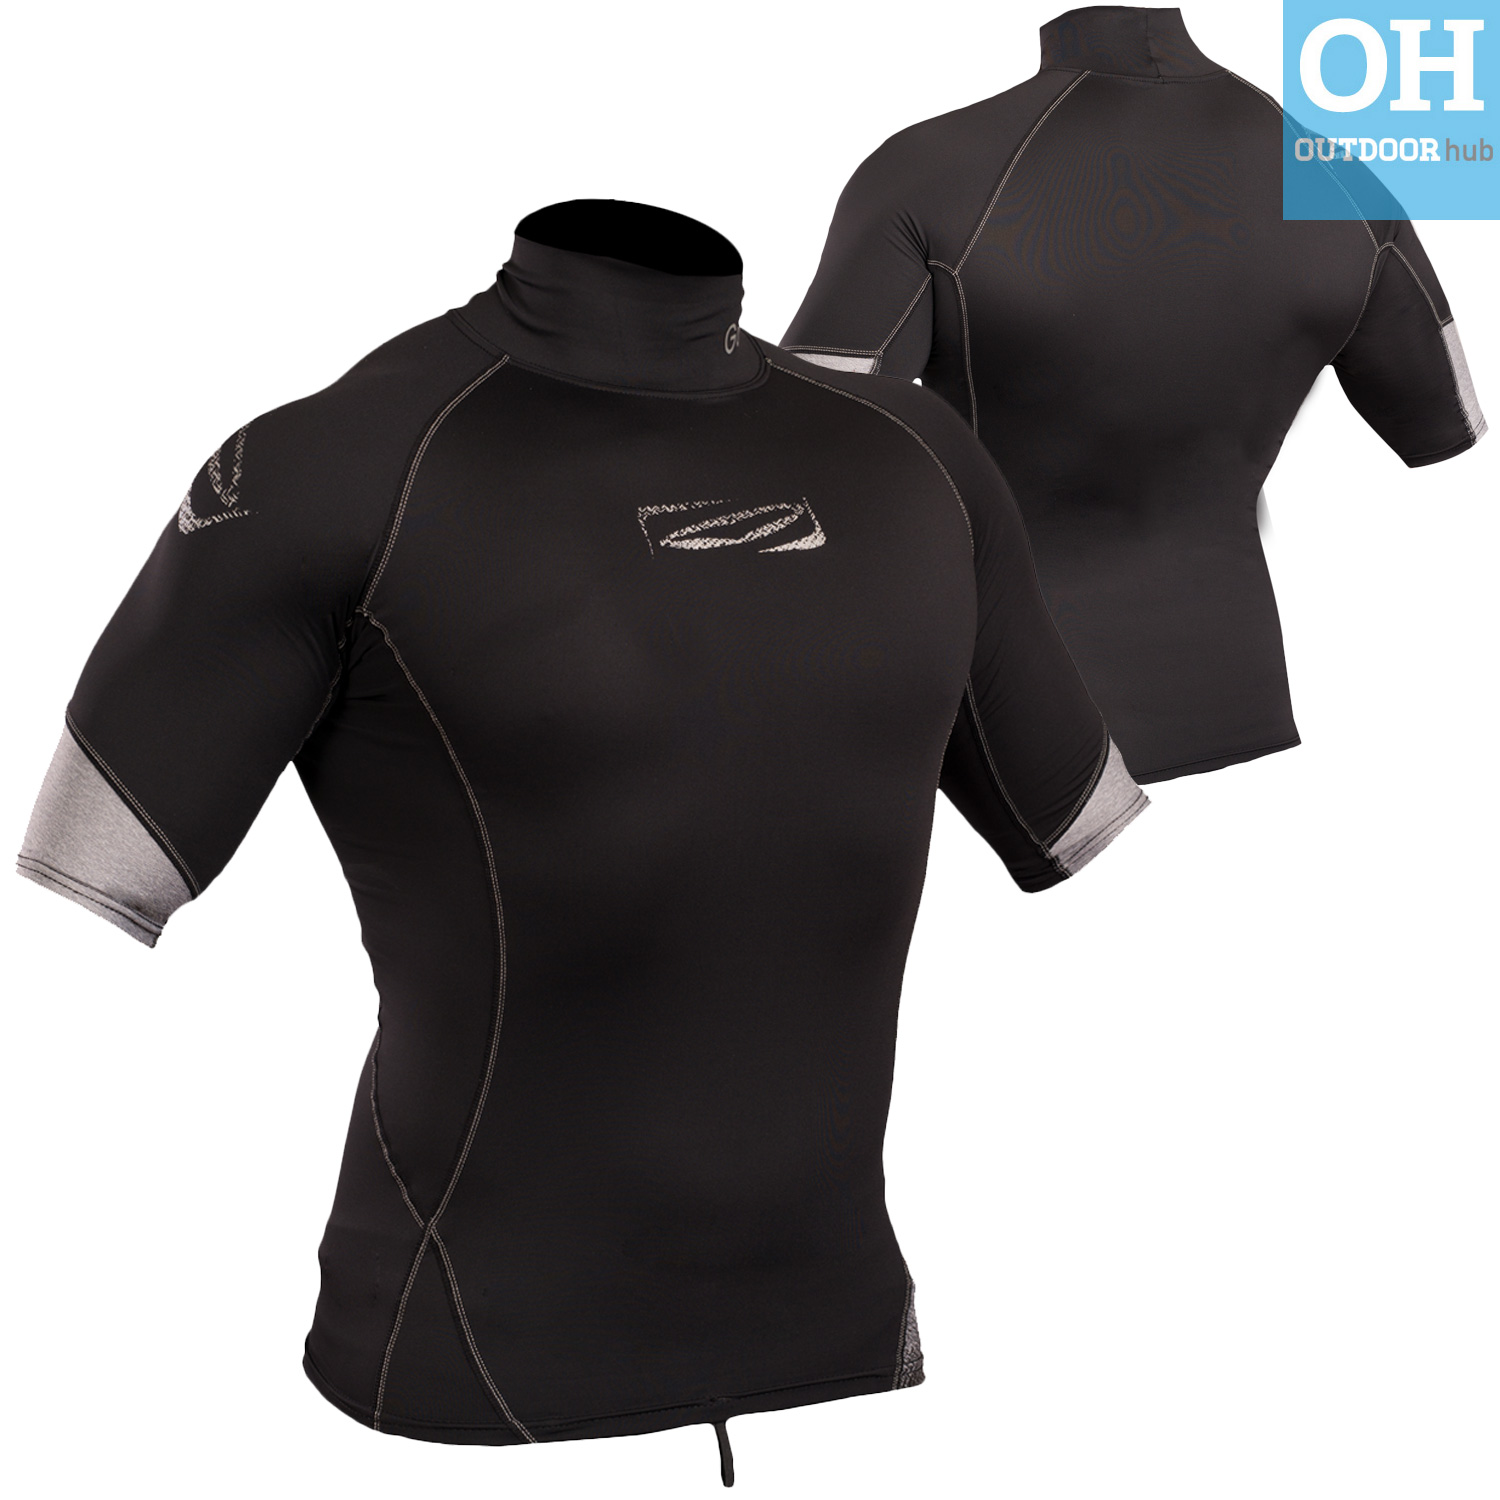 Gul-Xola-Mens-Short-Sleeve-Rash-Guard-Vest-Wetsuit-Top-UV-50-Surf-Swim-Dive thumbnail 9